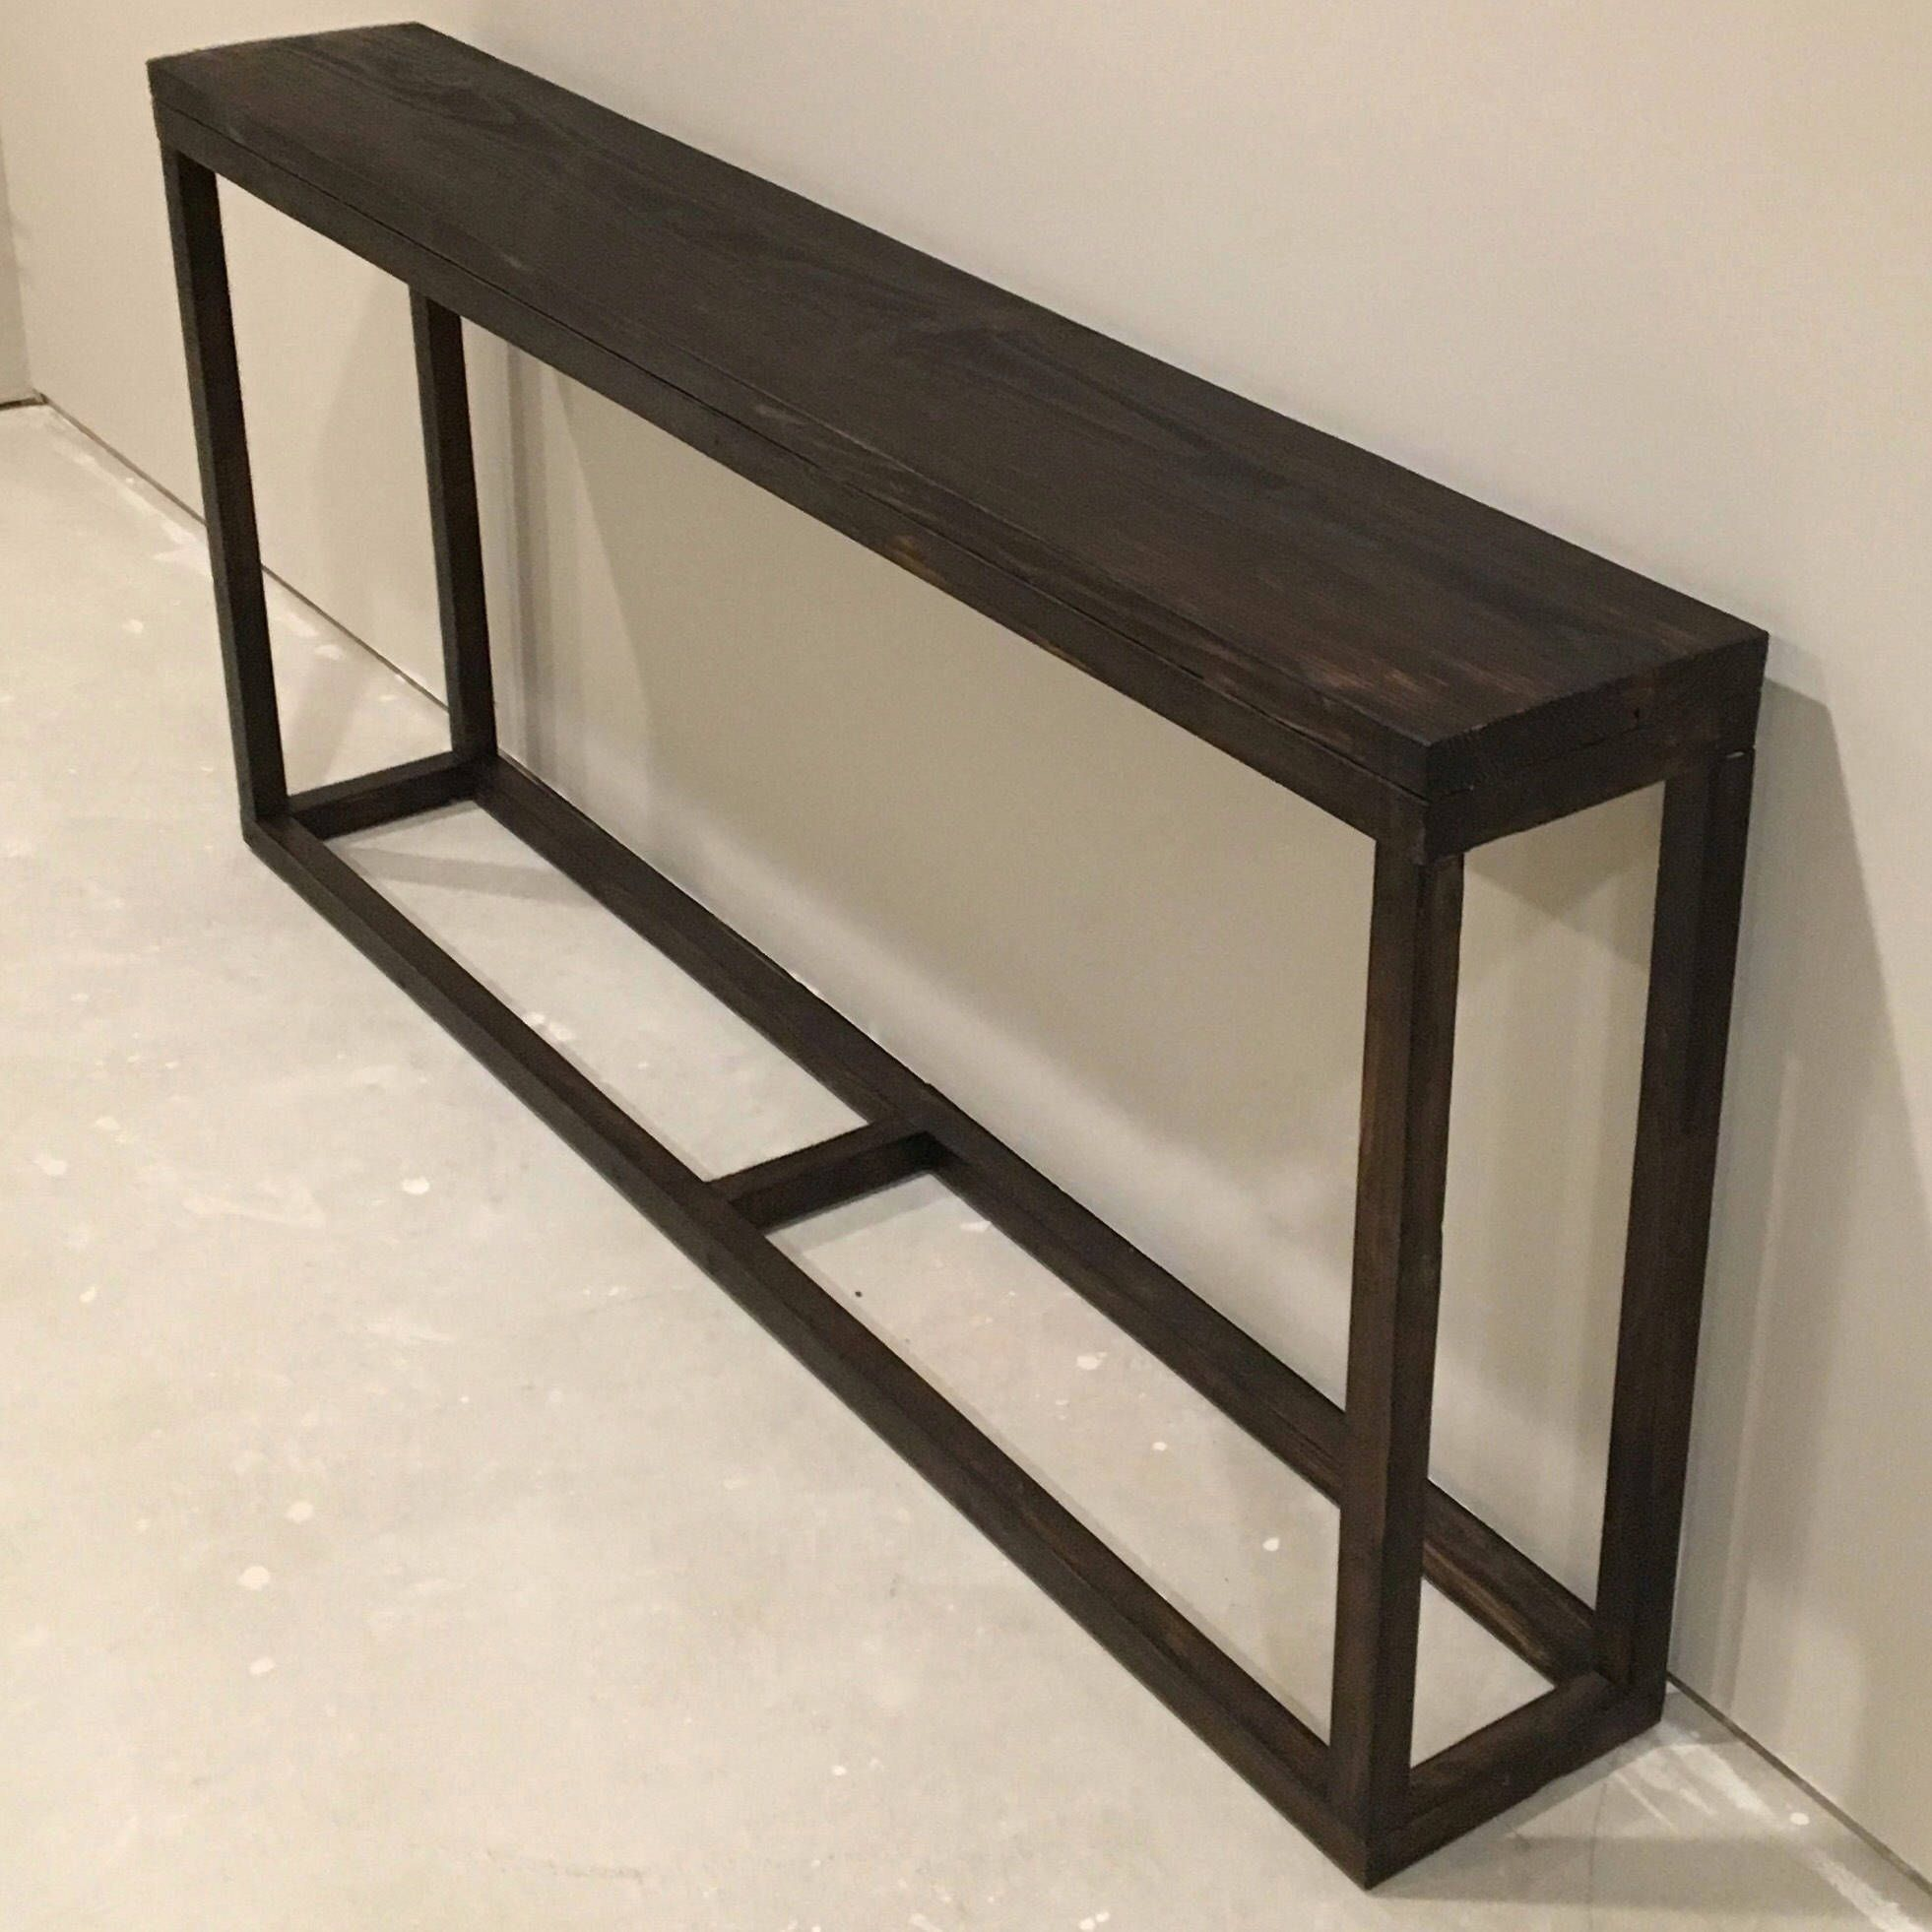 Long Console Table Narrow Console Table Long Entryway Table Behind Couch Table Behind Sofa Table Rustic Industrial Narrow Sofa Table Sofa Tables Narrow Sofa